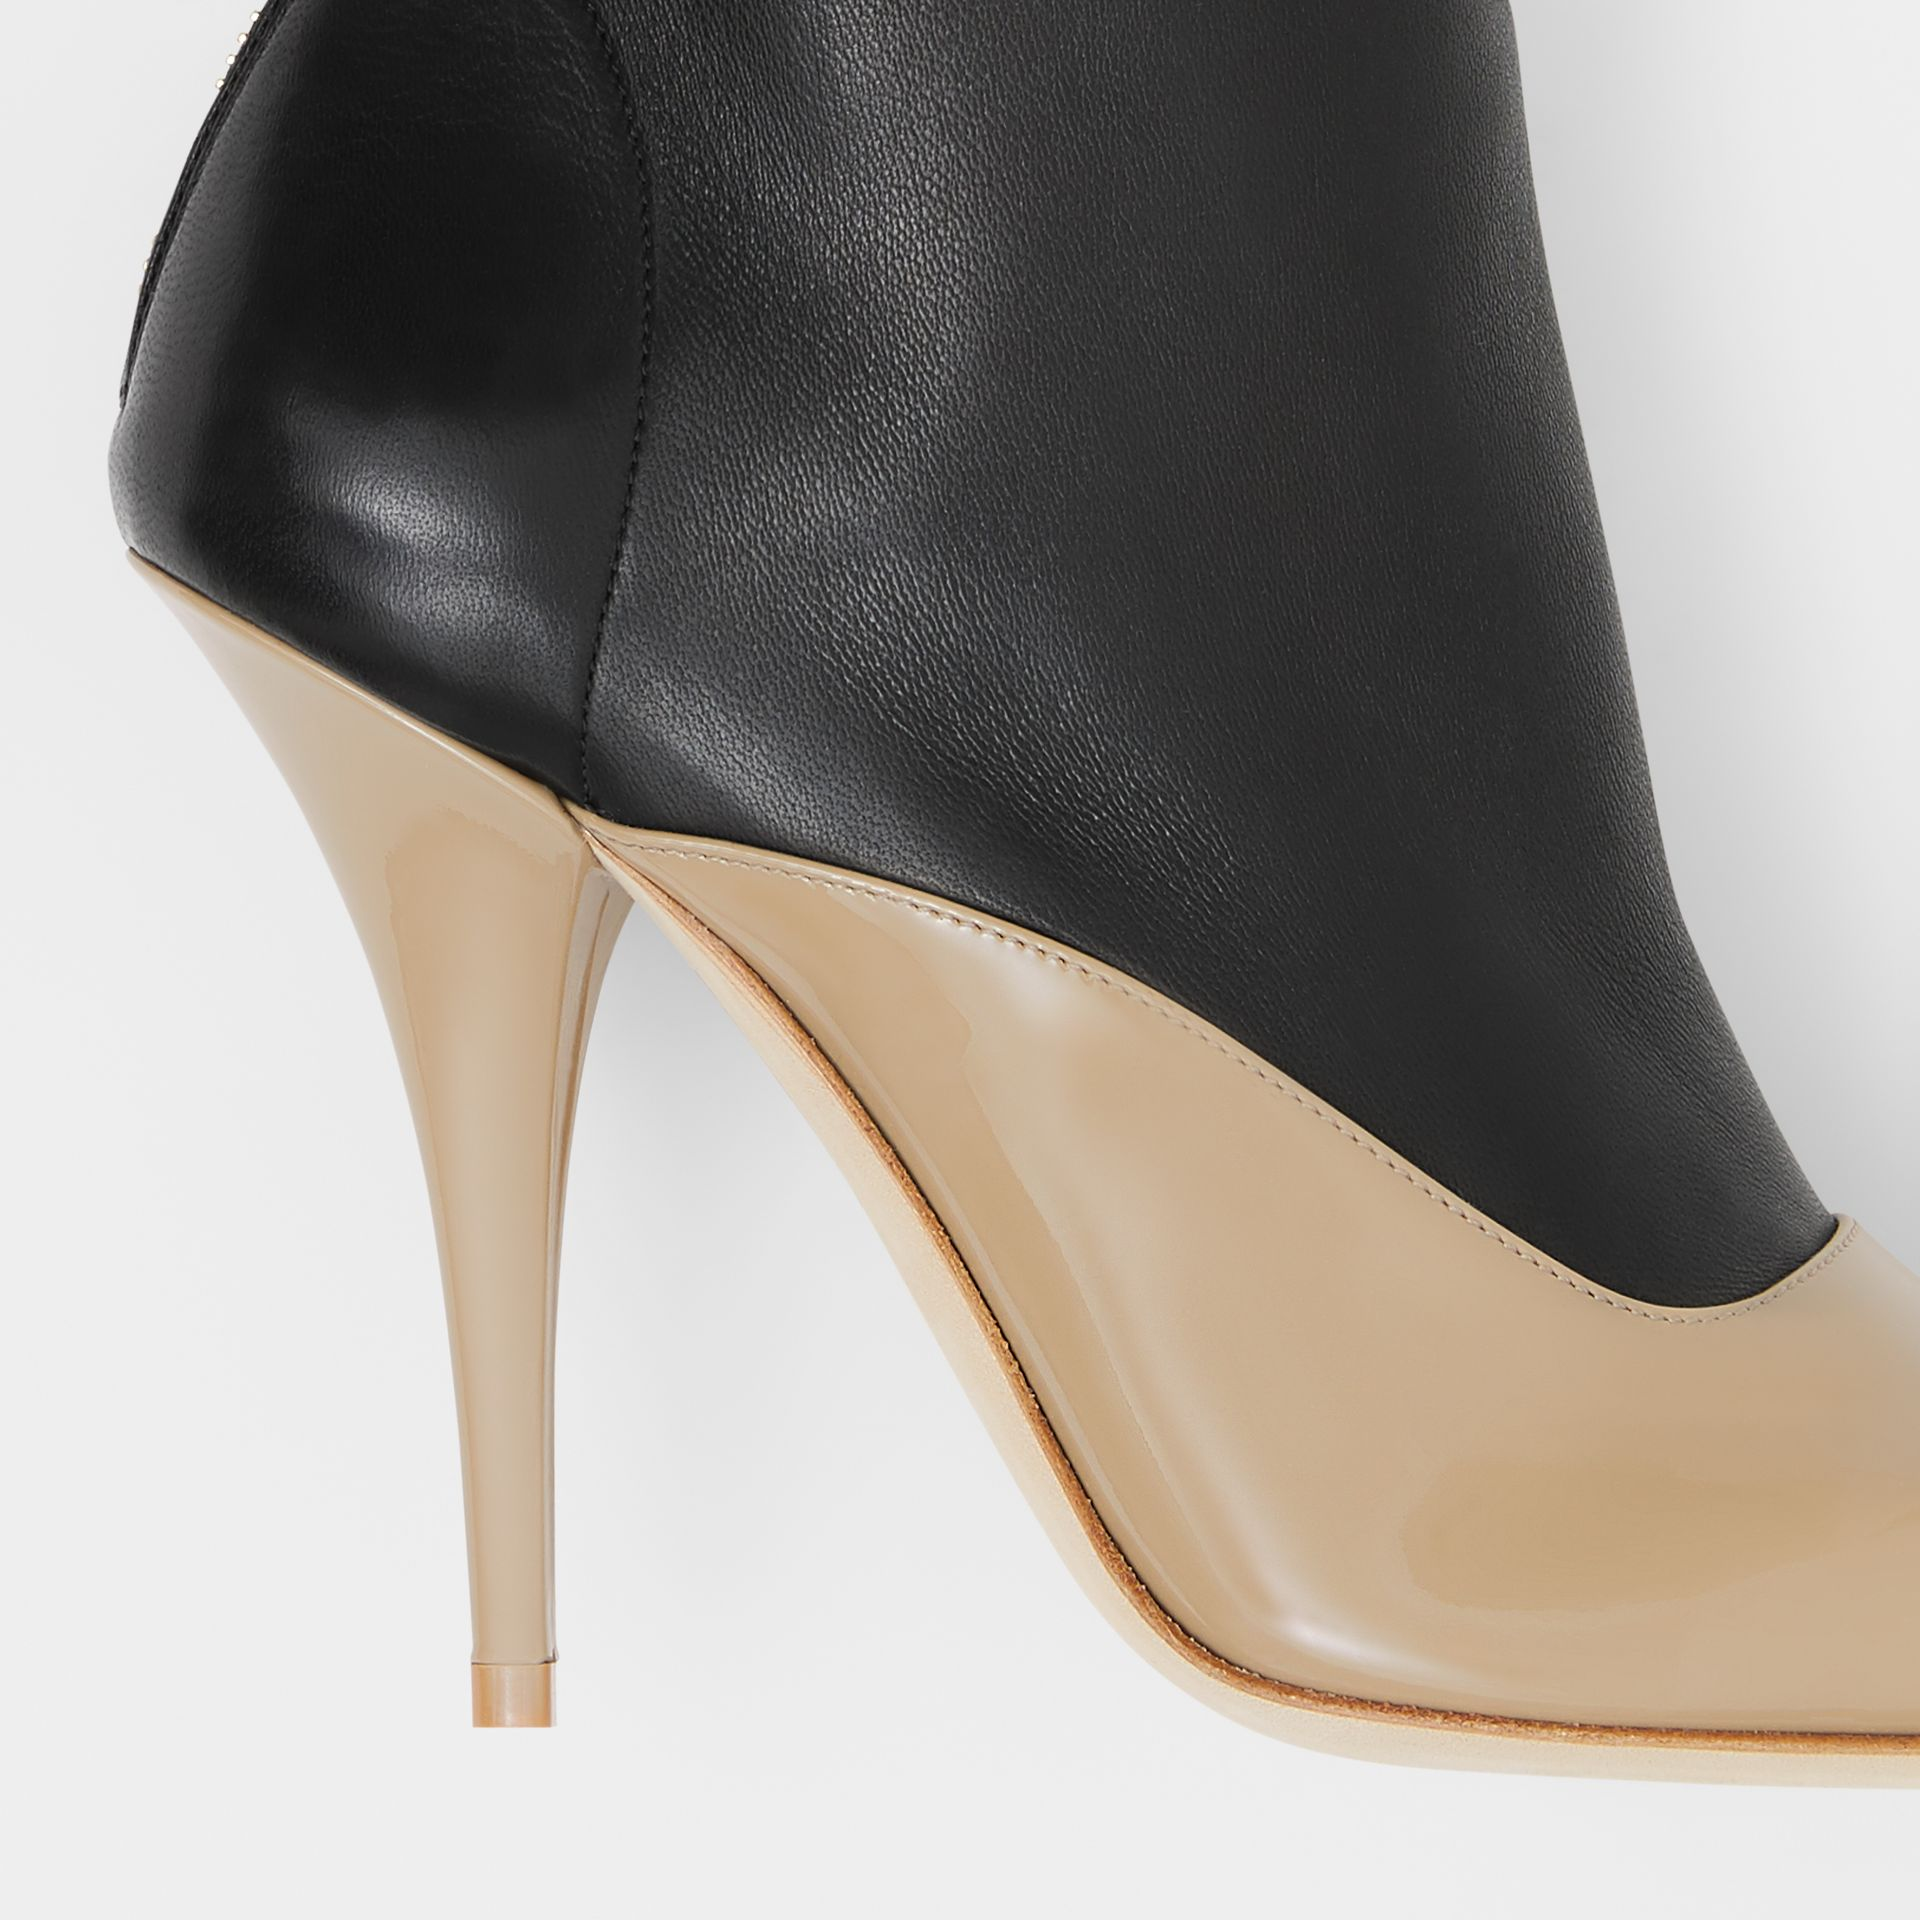 Two-tone Lambskin and Patent Leather Ankle Boots in Dark Honey/black - Women | Burberry - gallery image 1